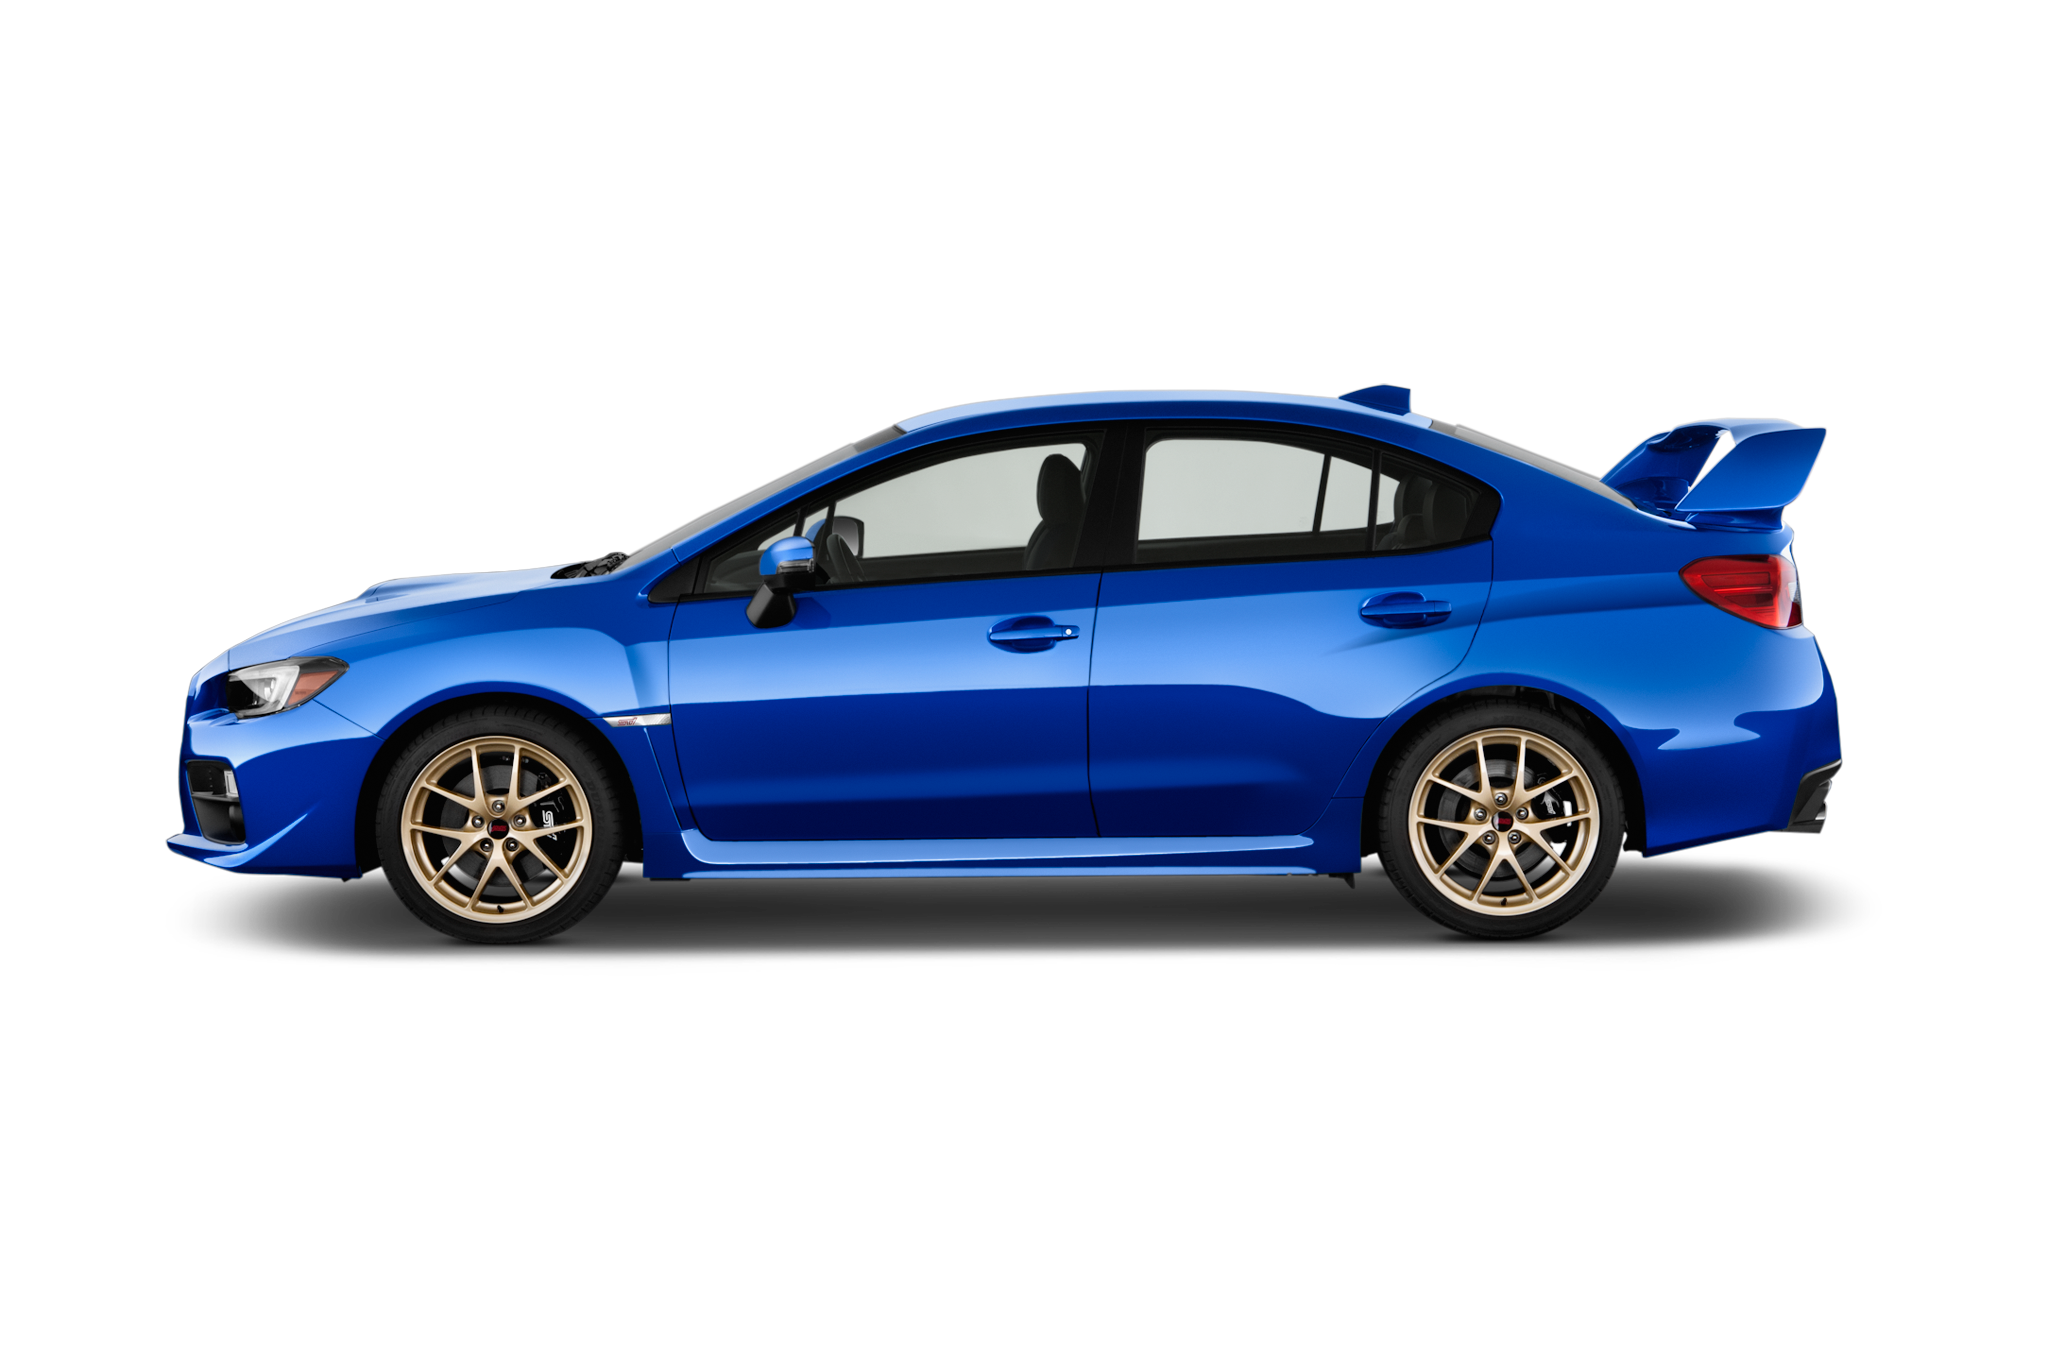 2017 subaru wrx wrx sti 2016 subaru crosstrek se priced automobile. Black Bedroom Furniture Sets. Home Design Ideas